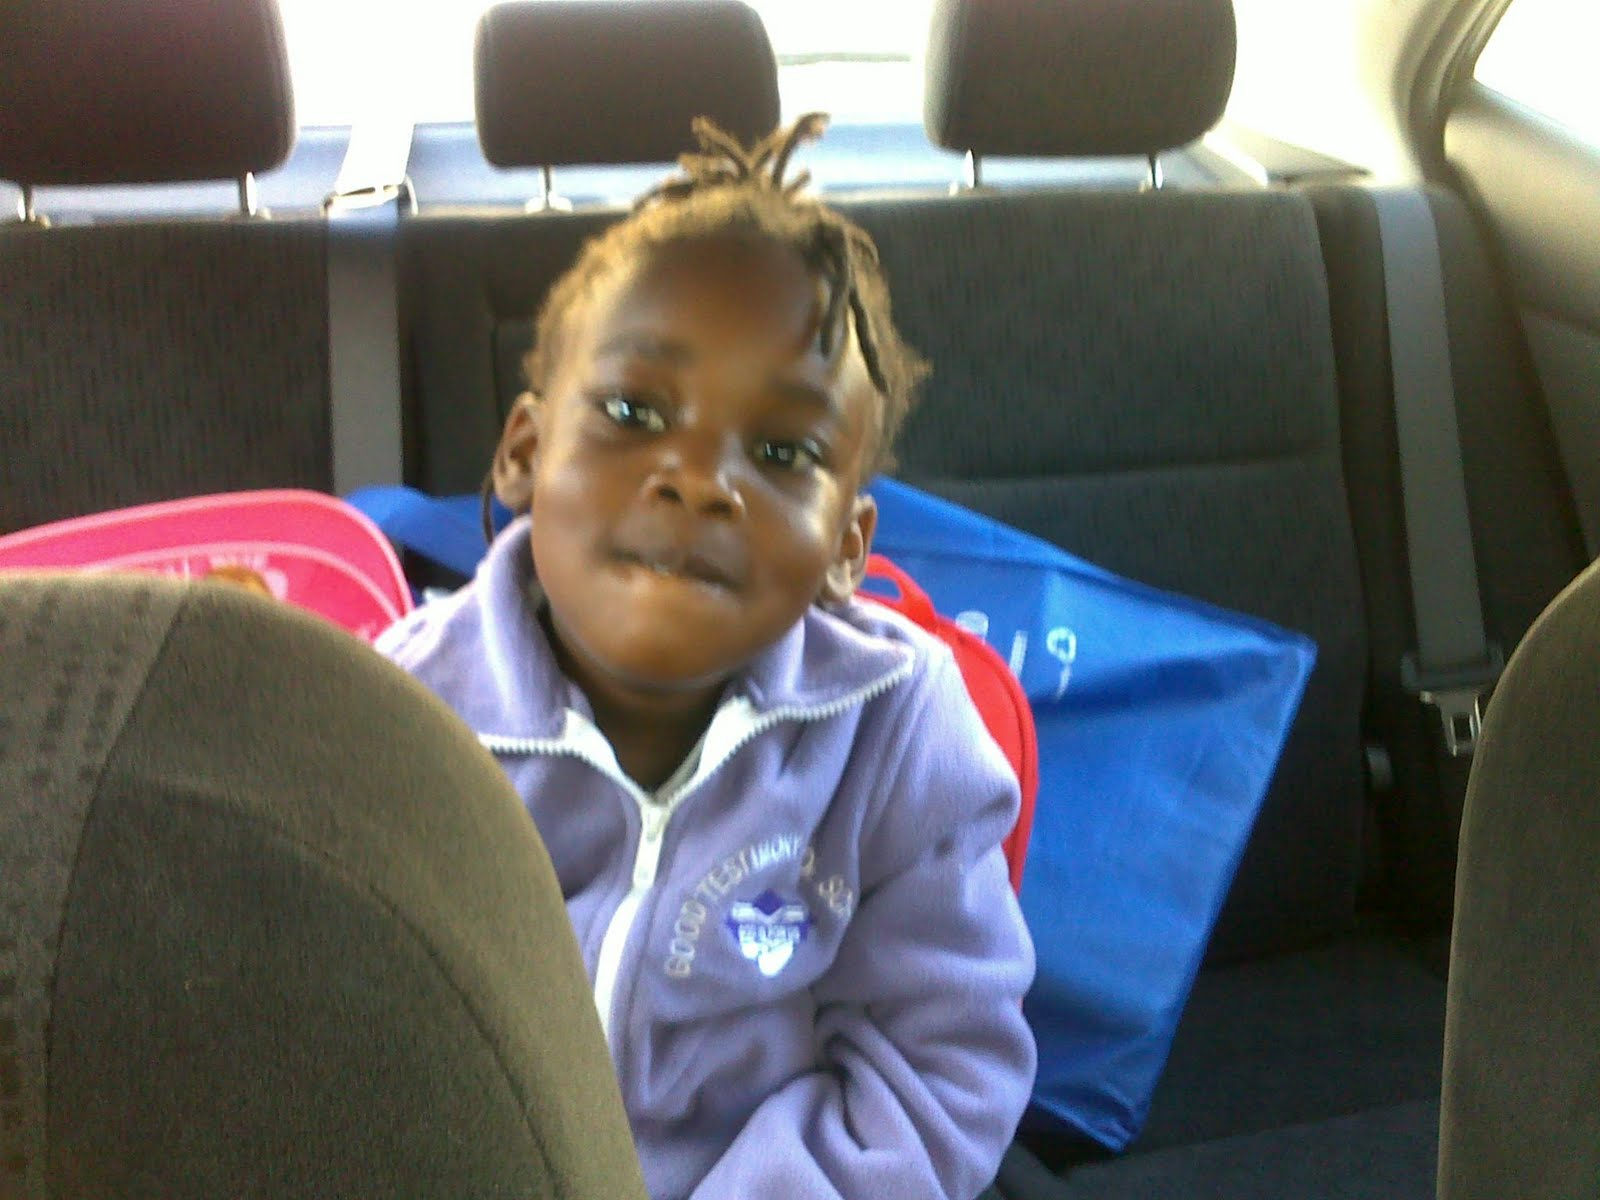 Imani%252Bin%252Bcar Imani ready for the ride to school. I heard she cried on the first day ...